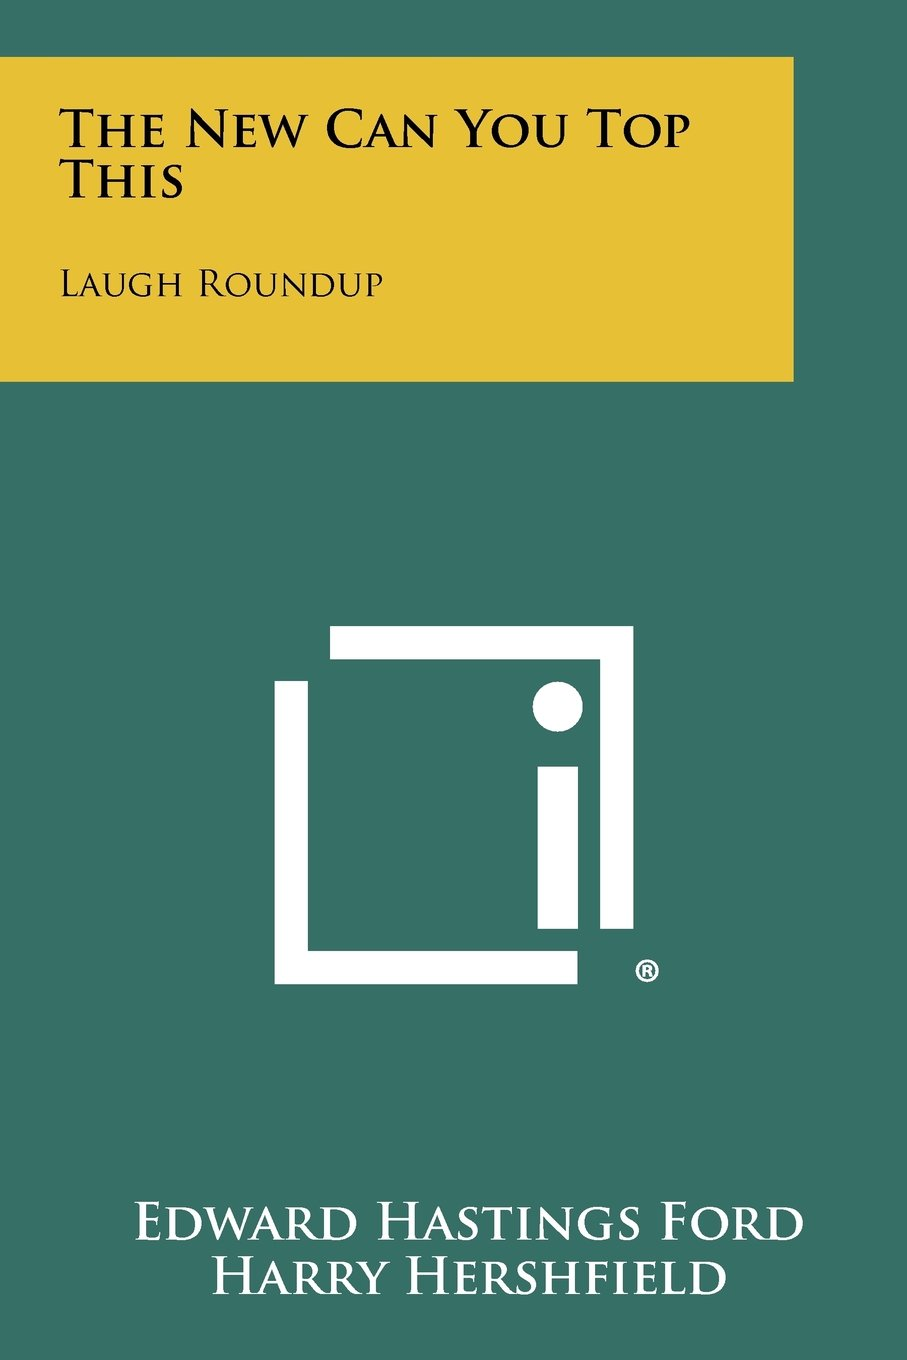 Download The New Can You Top This: Laugh Roundup PDF